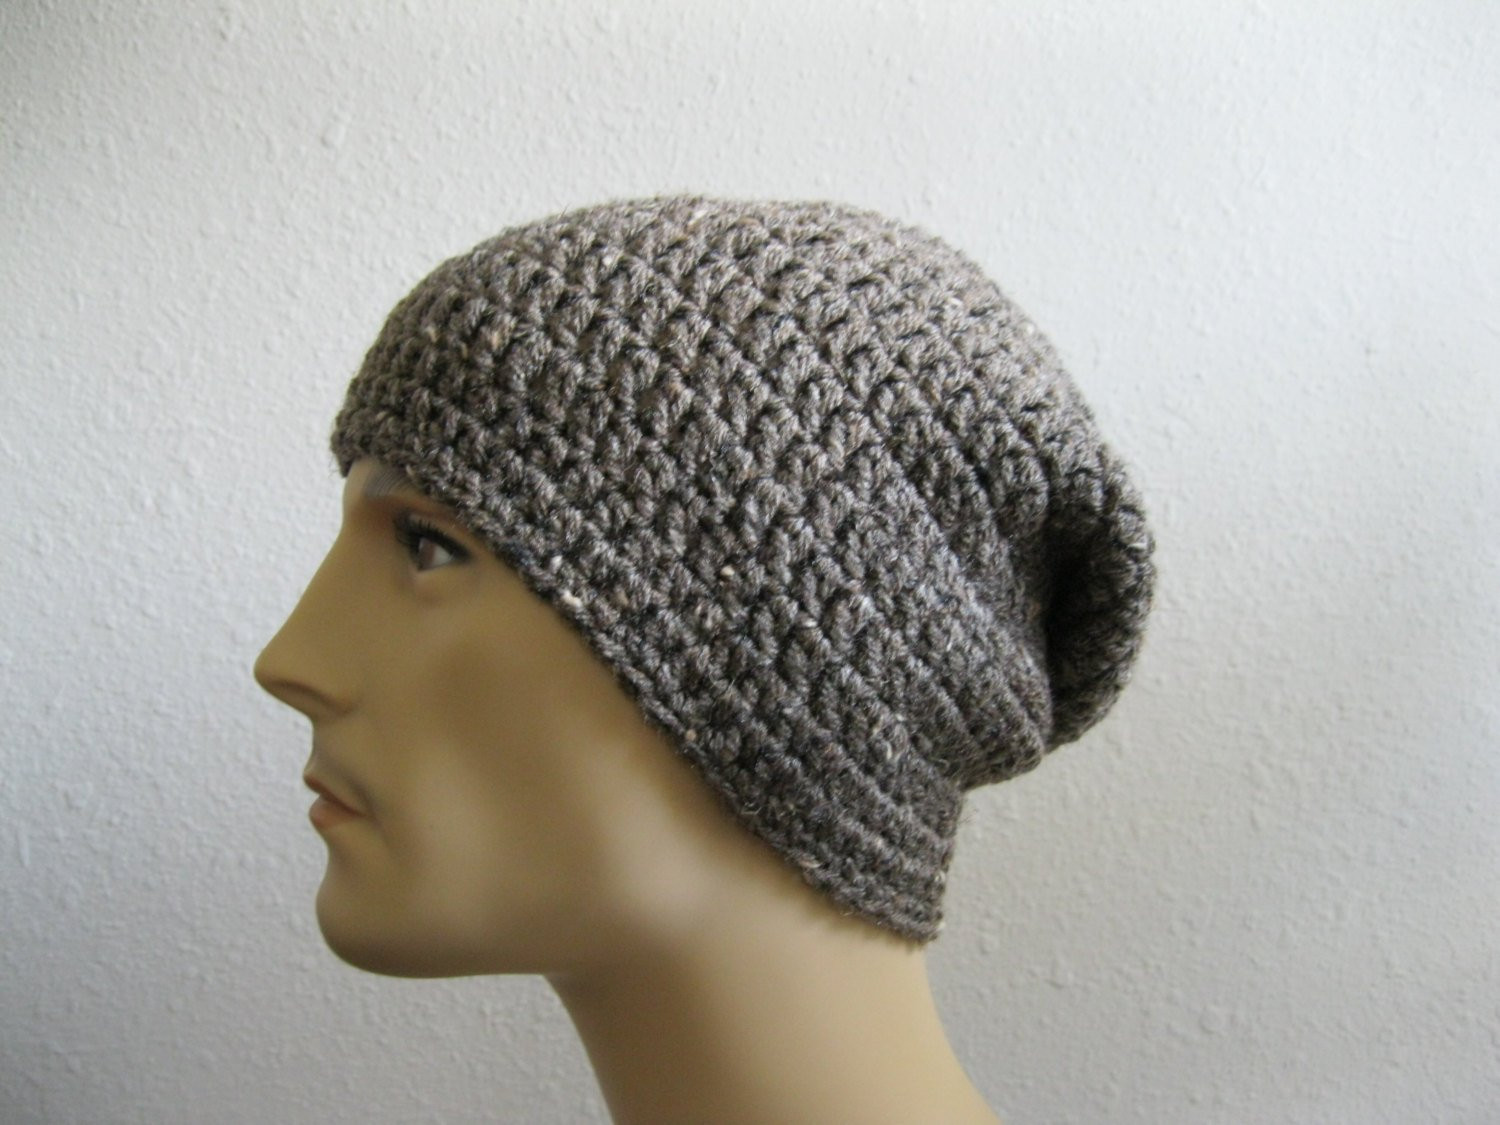 Beautiful Crochet Beanie Slouchy Beanie Mens Hat Crochet Slouchy Crochet Mens Beanie Of Luxury 44 Ideas Crochet Mens Beanie